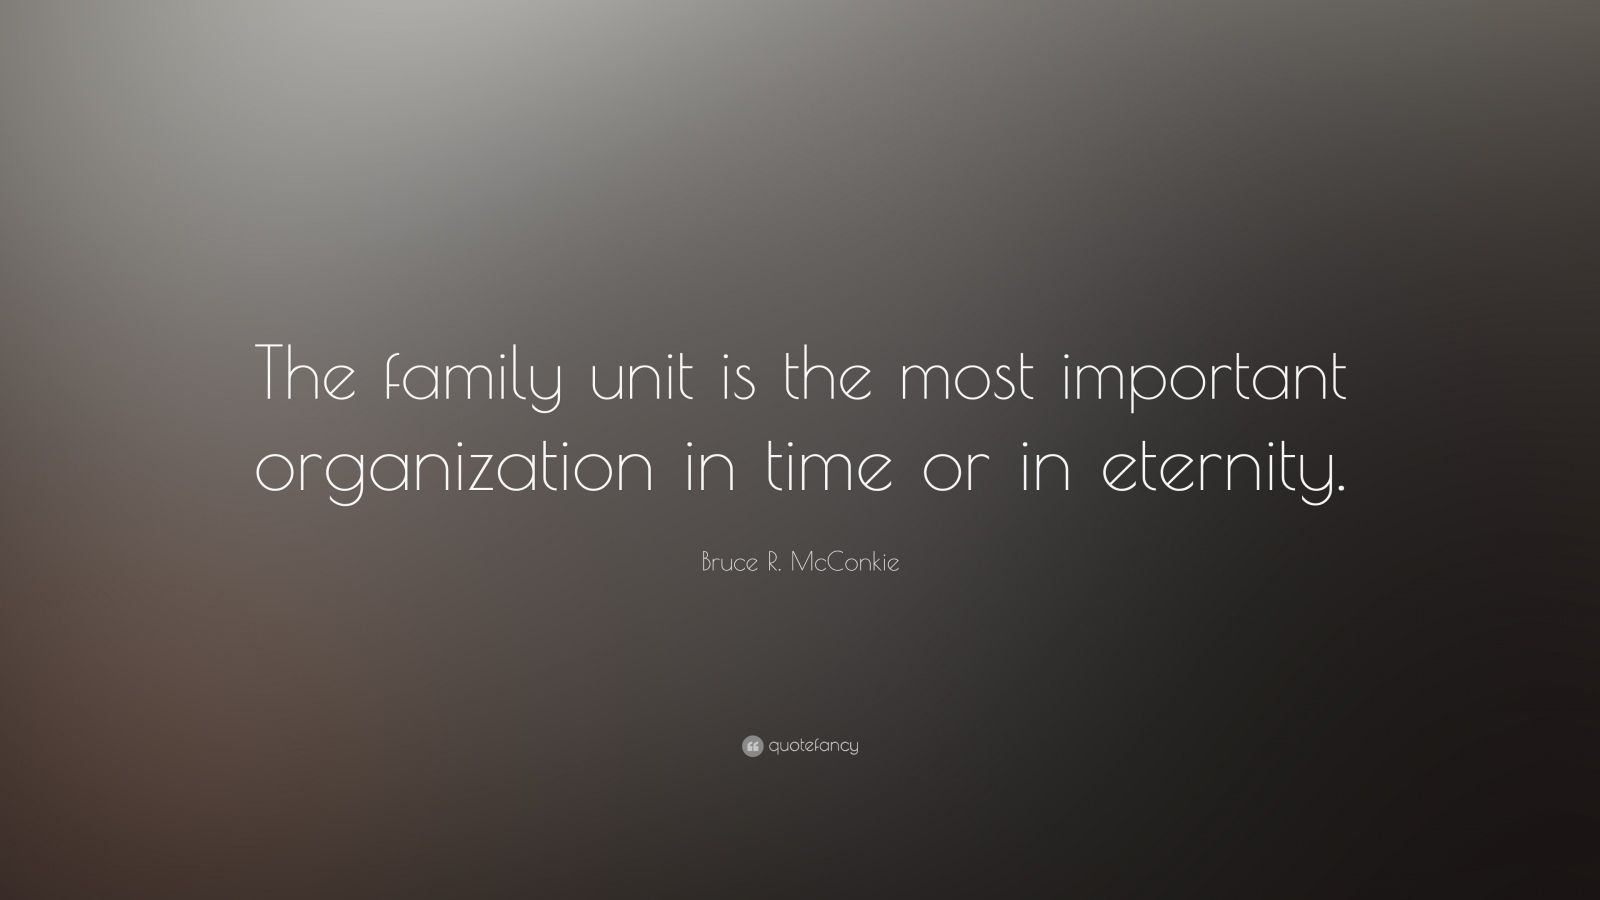 33 Great Quotes About Family: Bruce R. McConkie Quotes (33 Wallpapers)